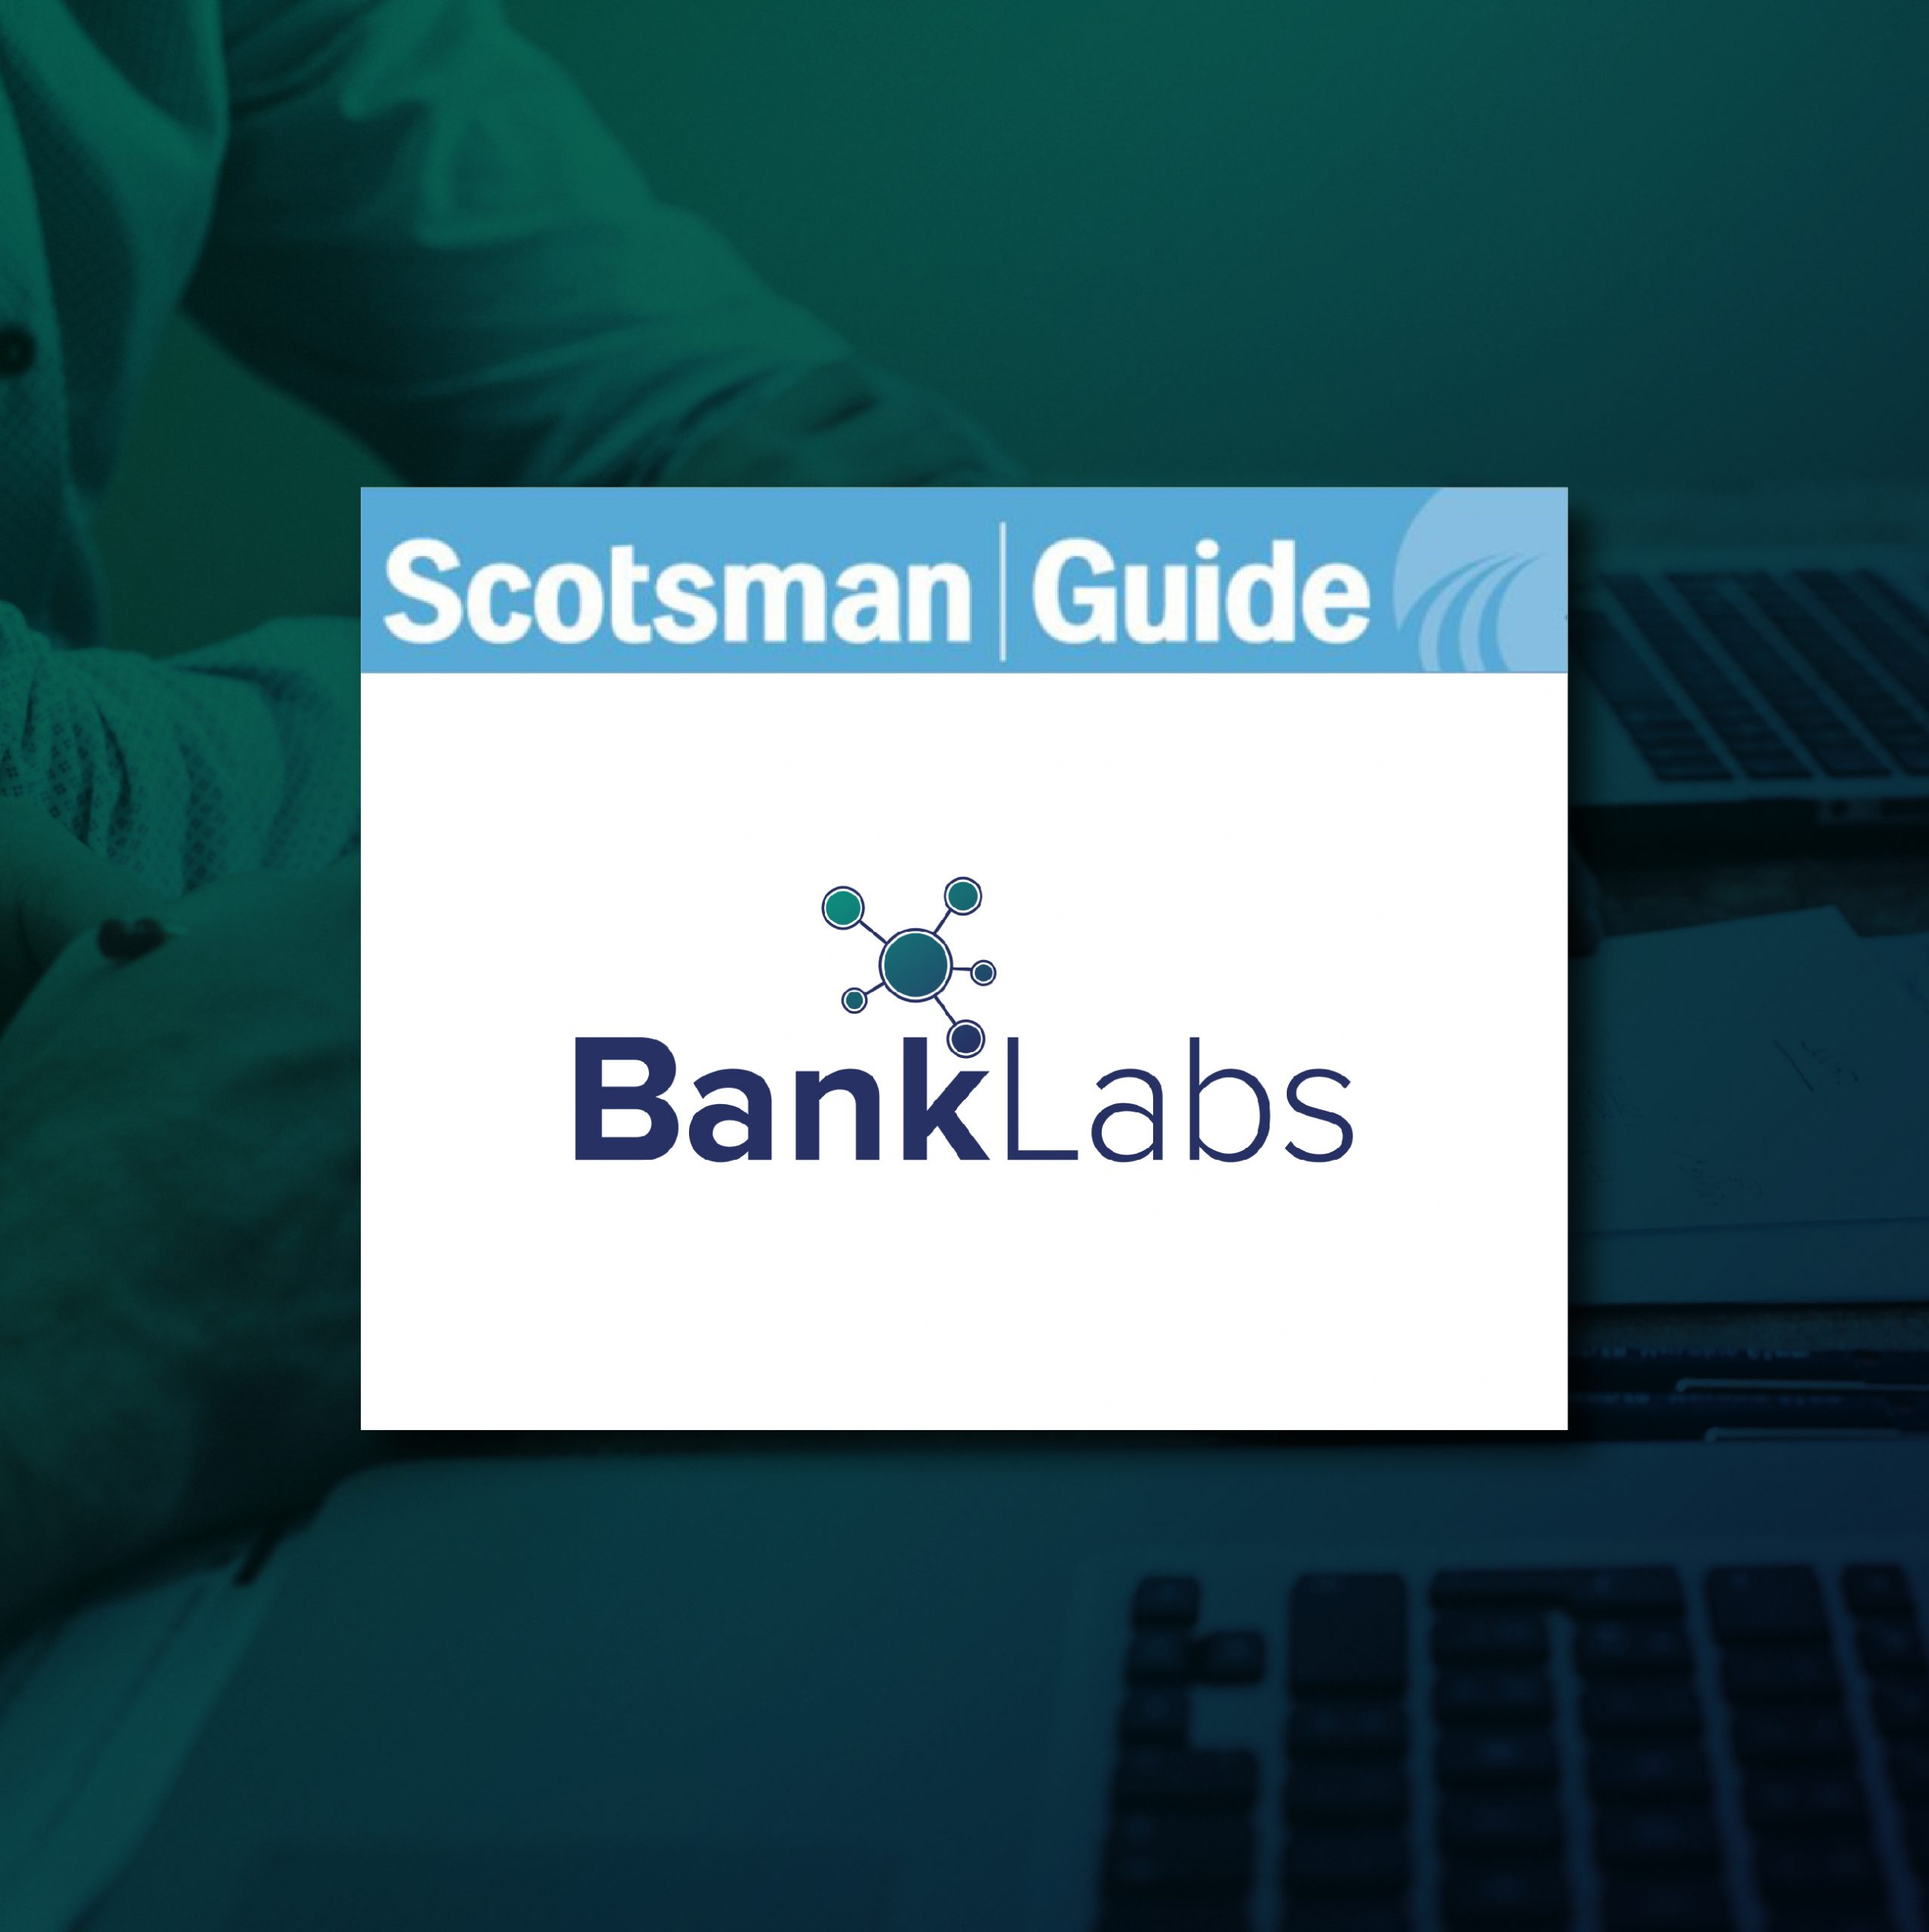 Scotsman Guide – Mobile Lending is the Next Wave